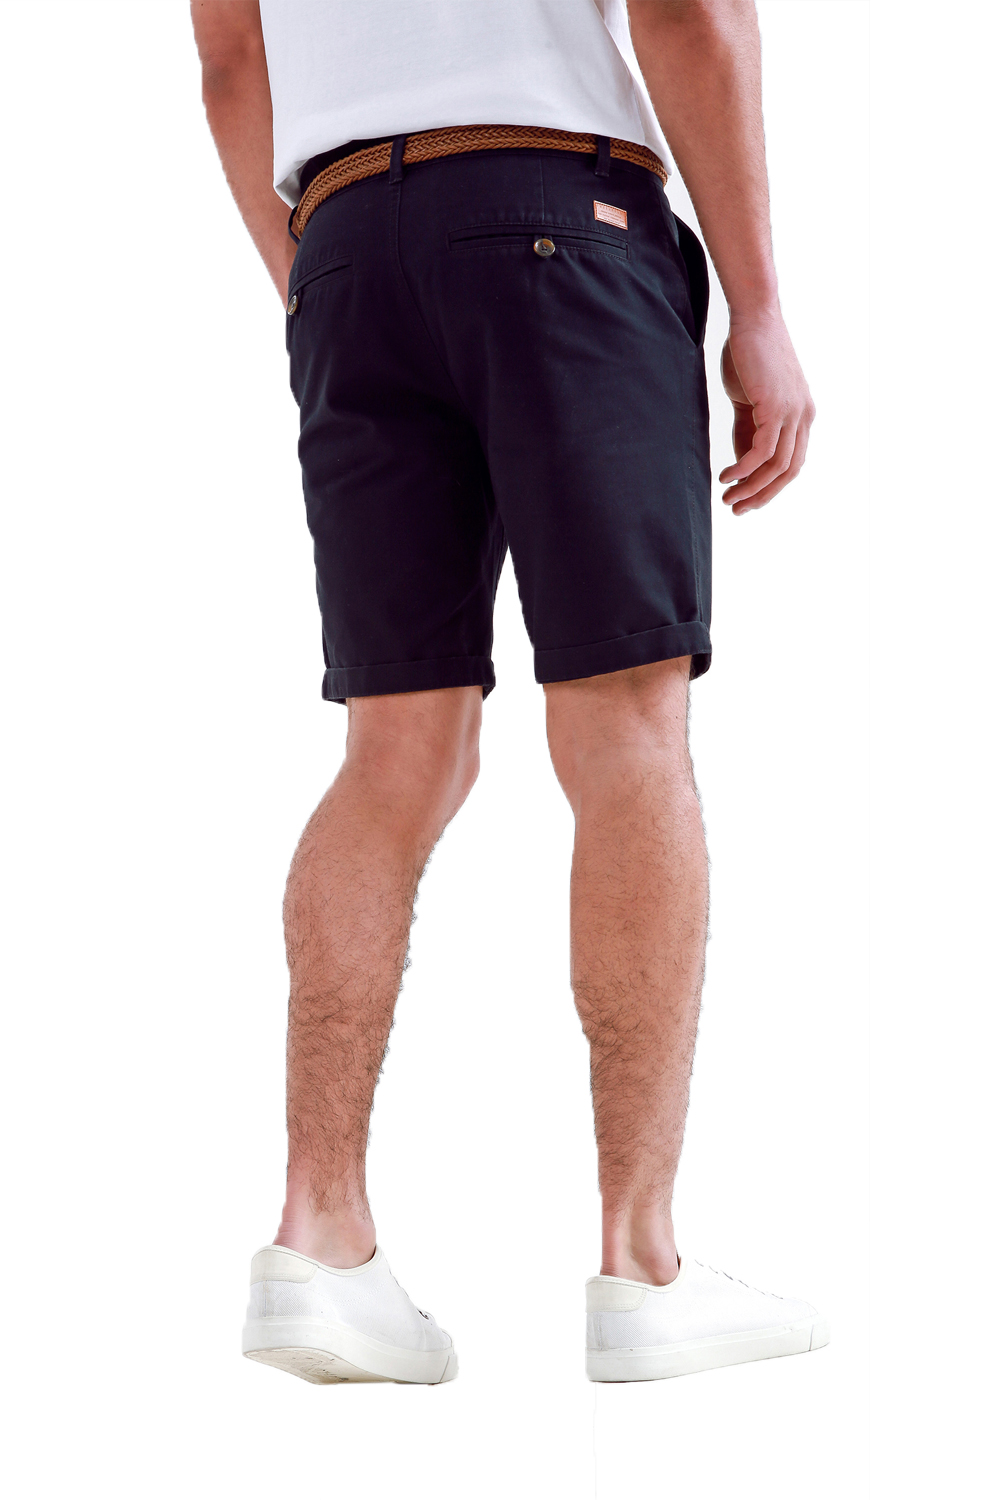 Threadbare-Mens-Slim-Fit-Belted-Chino-Shorts-Summer-Casual-Cotton-Smart-Bottoms thumbnail 5